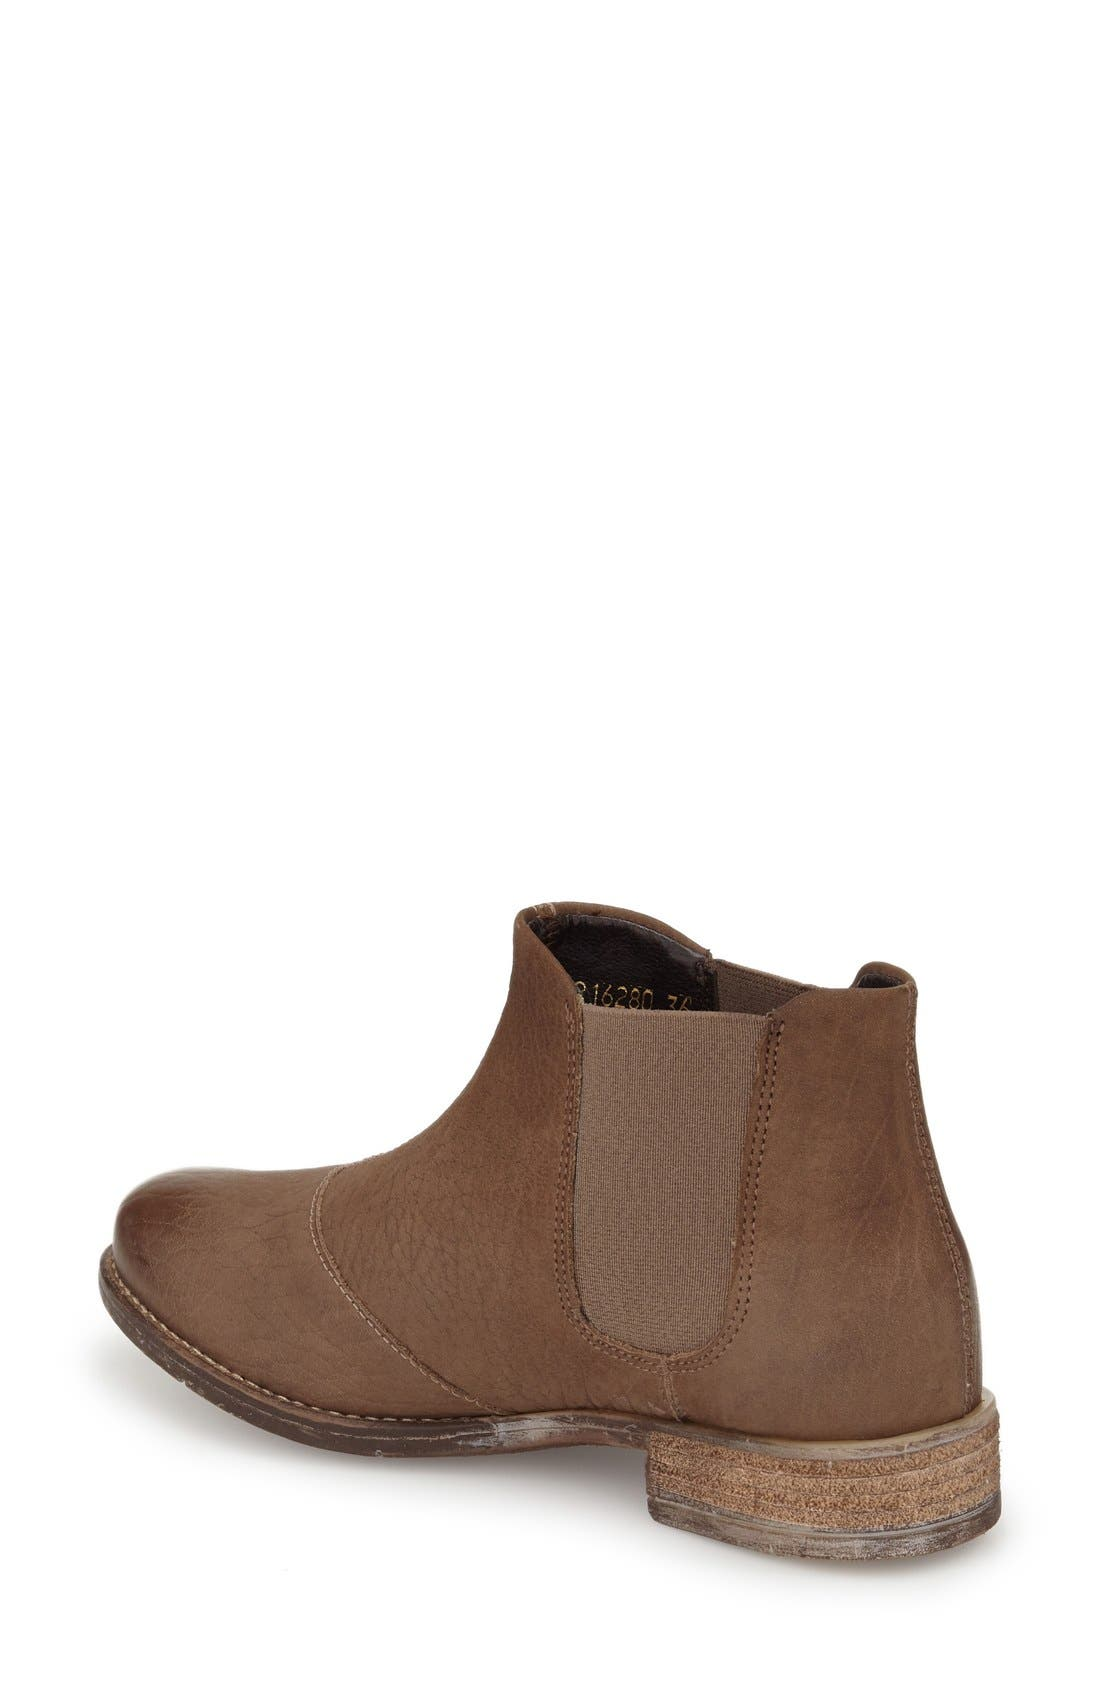 Alternate Image 2  - Josef Seibel 'Sienna 05' Chelsea Boot (Women)